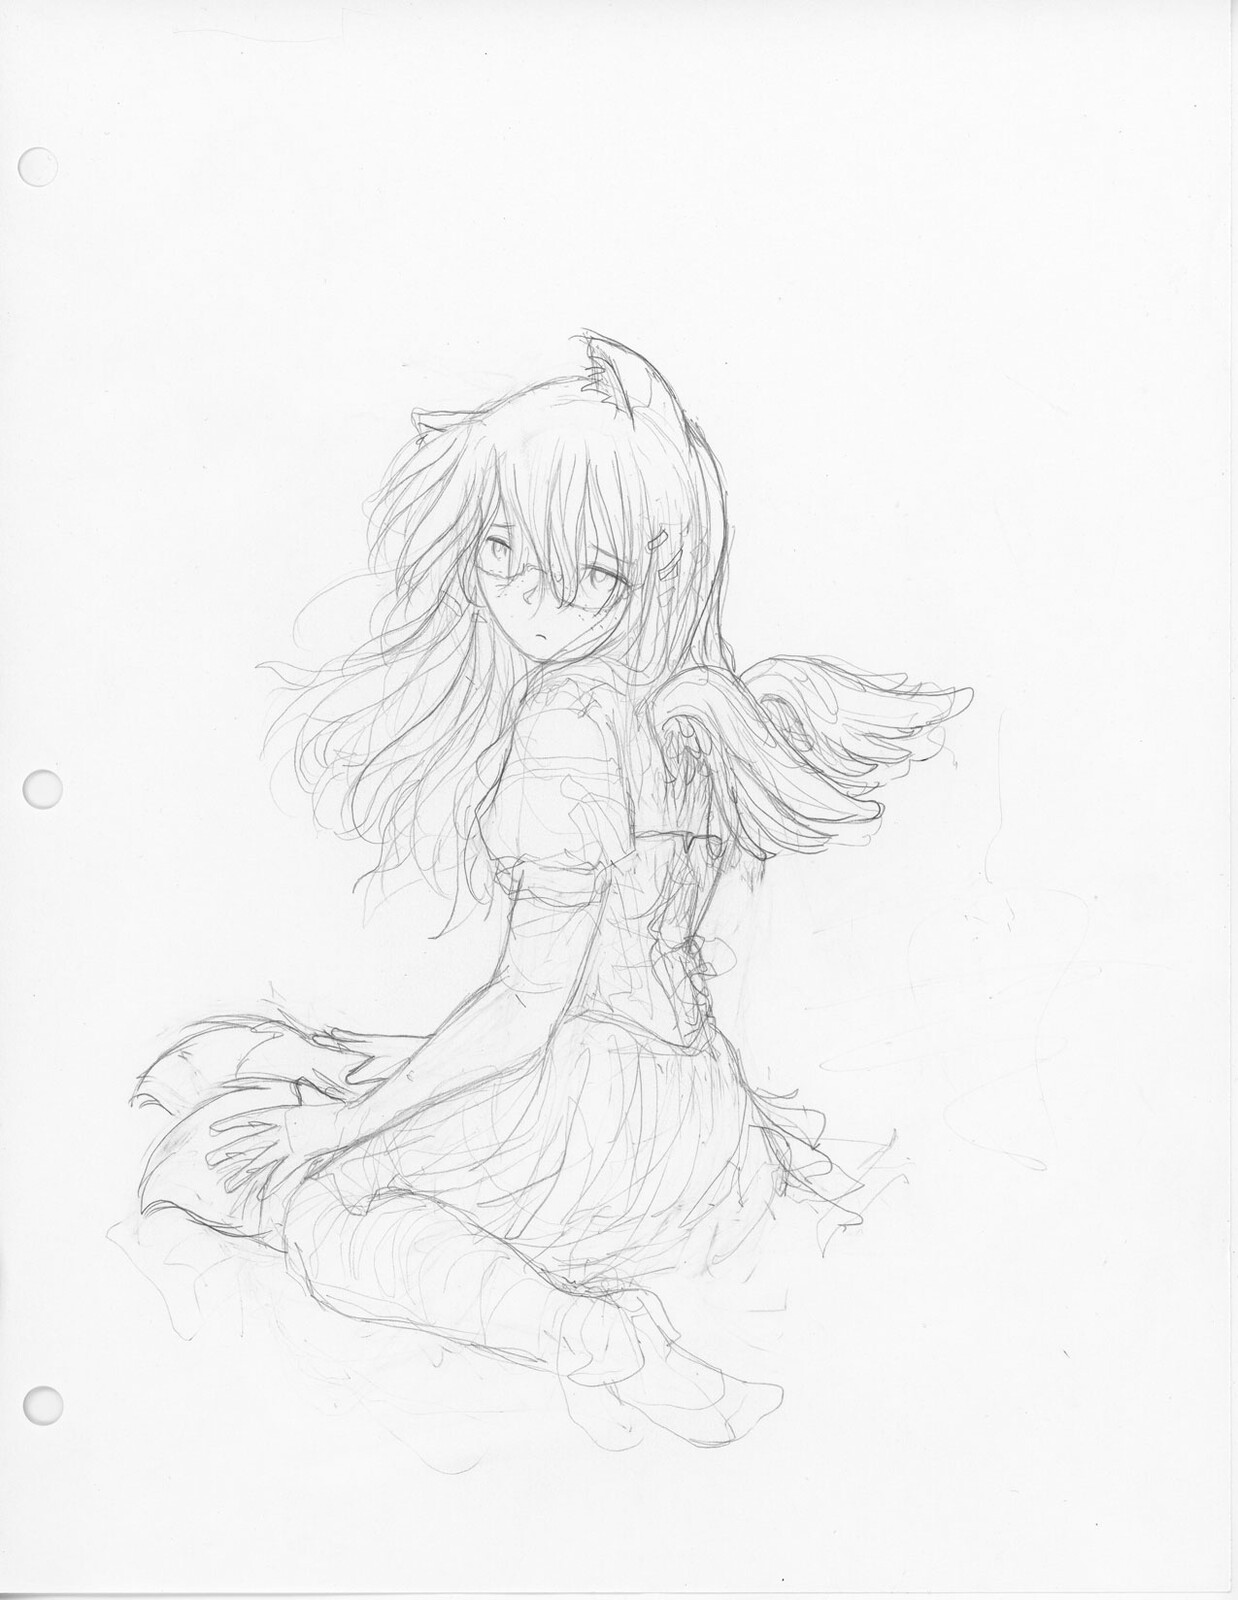 Initial rough sketch, Pencil (HB) on HP Bright White Inkjet Paper